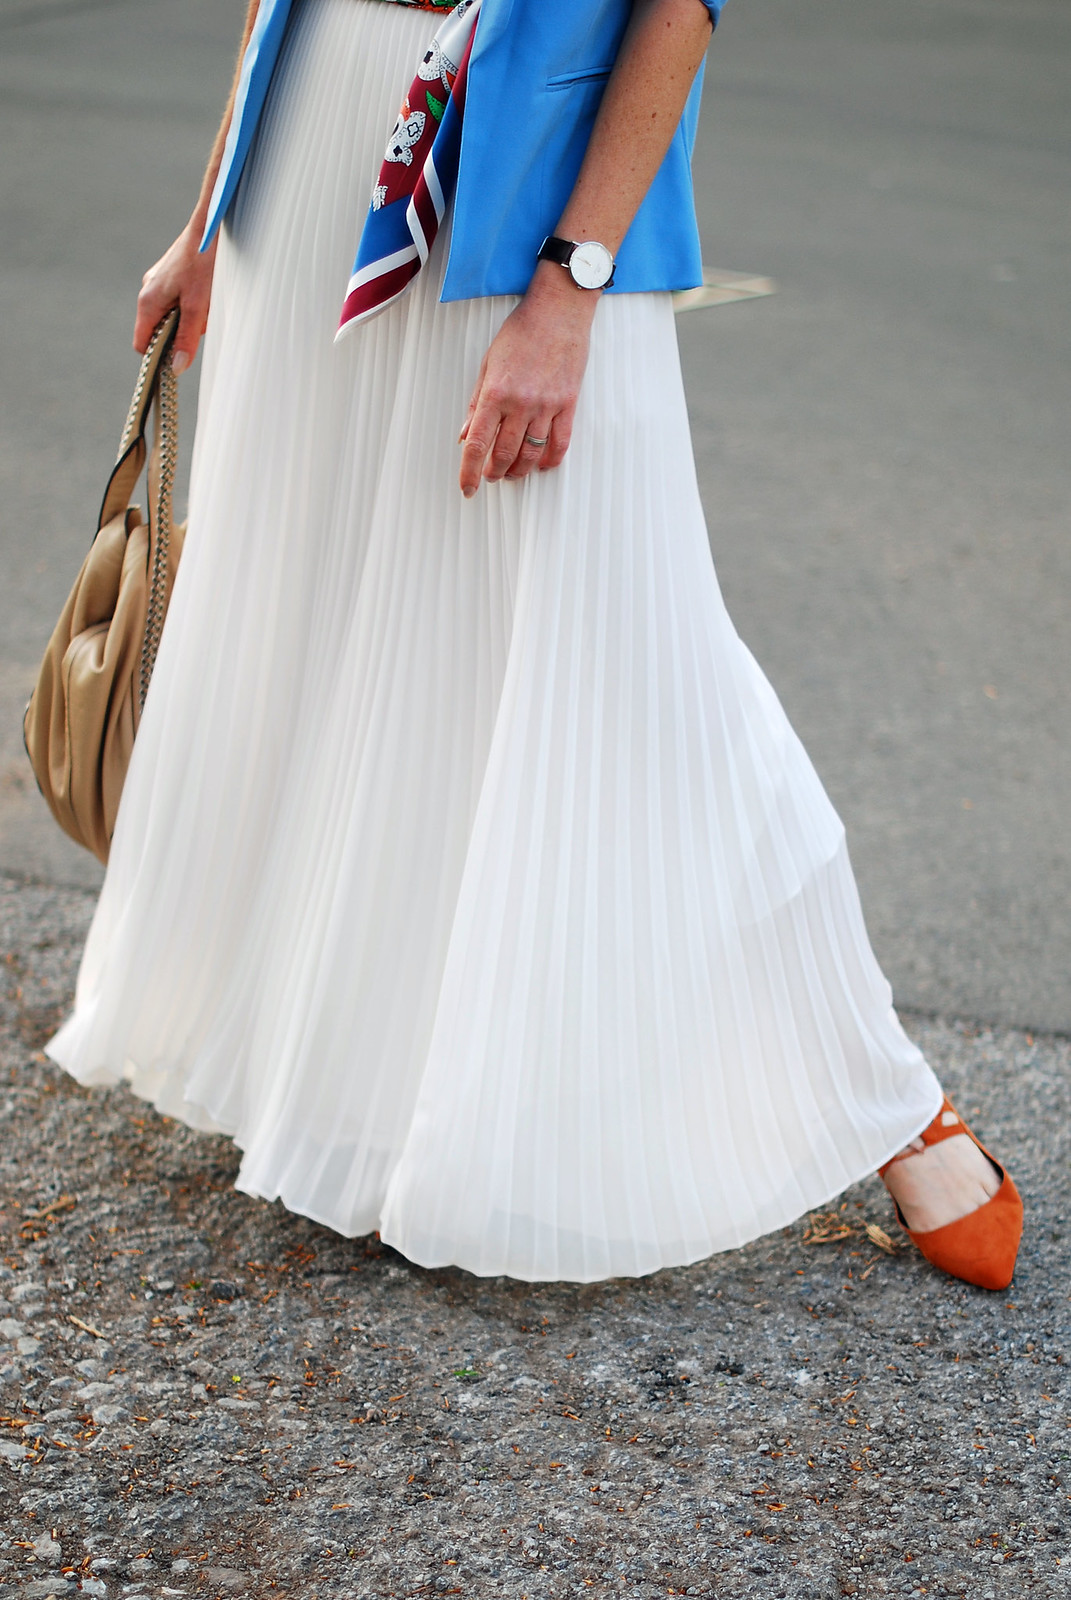 SS16 White pleated maxi skirt, white chiffon top, blue blazer, scarf as belt, orange lace up flats | Not Dressed As Lamb